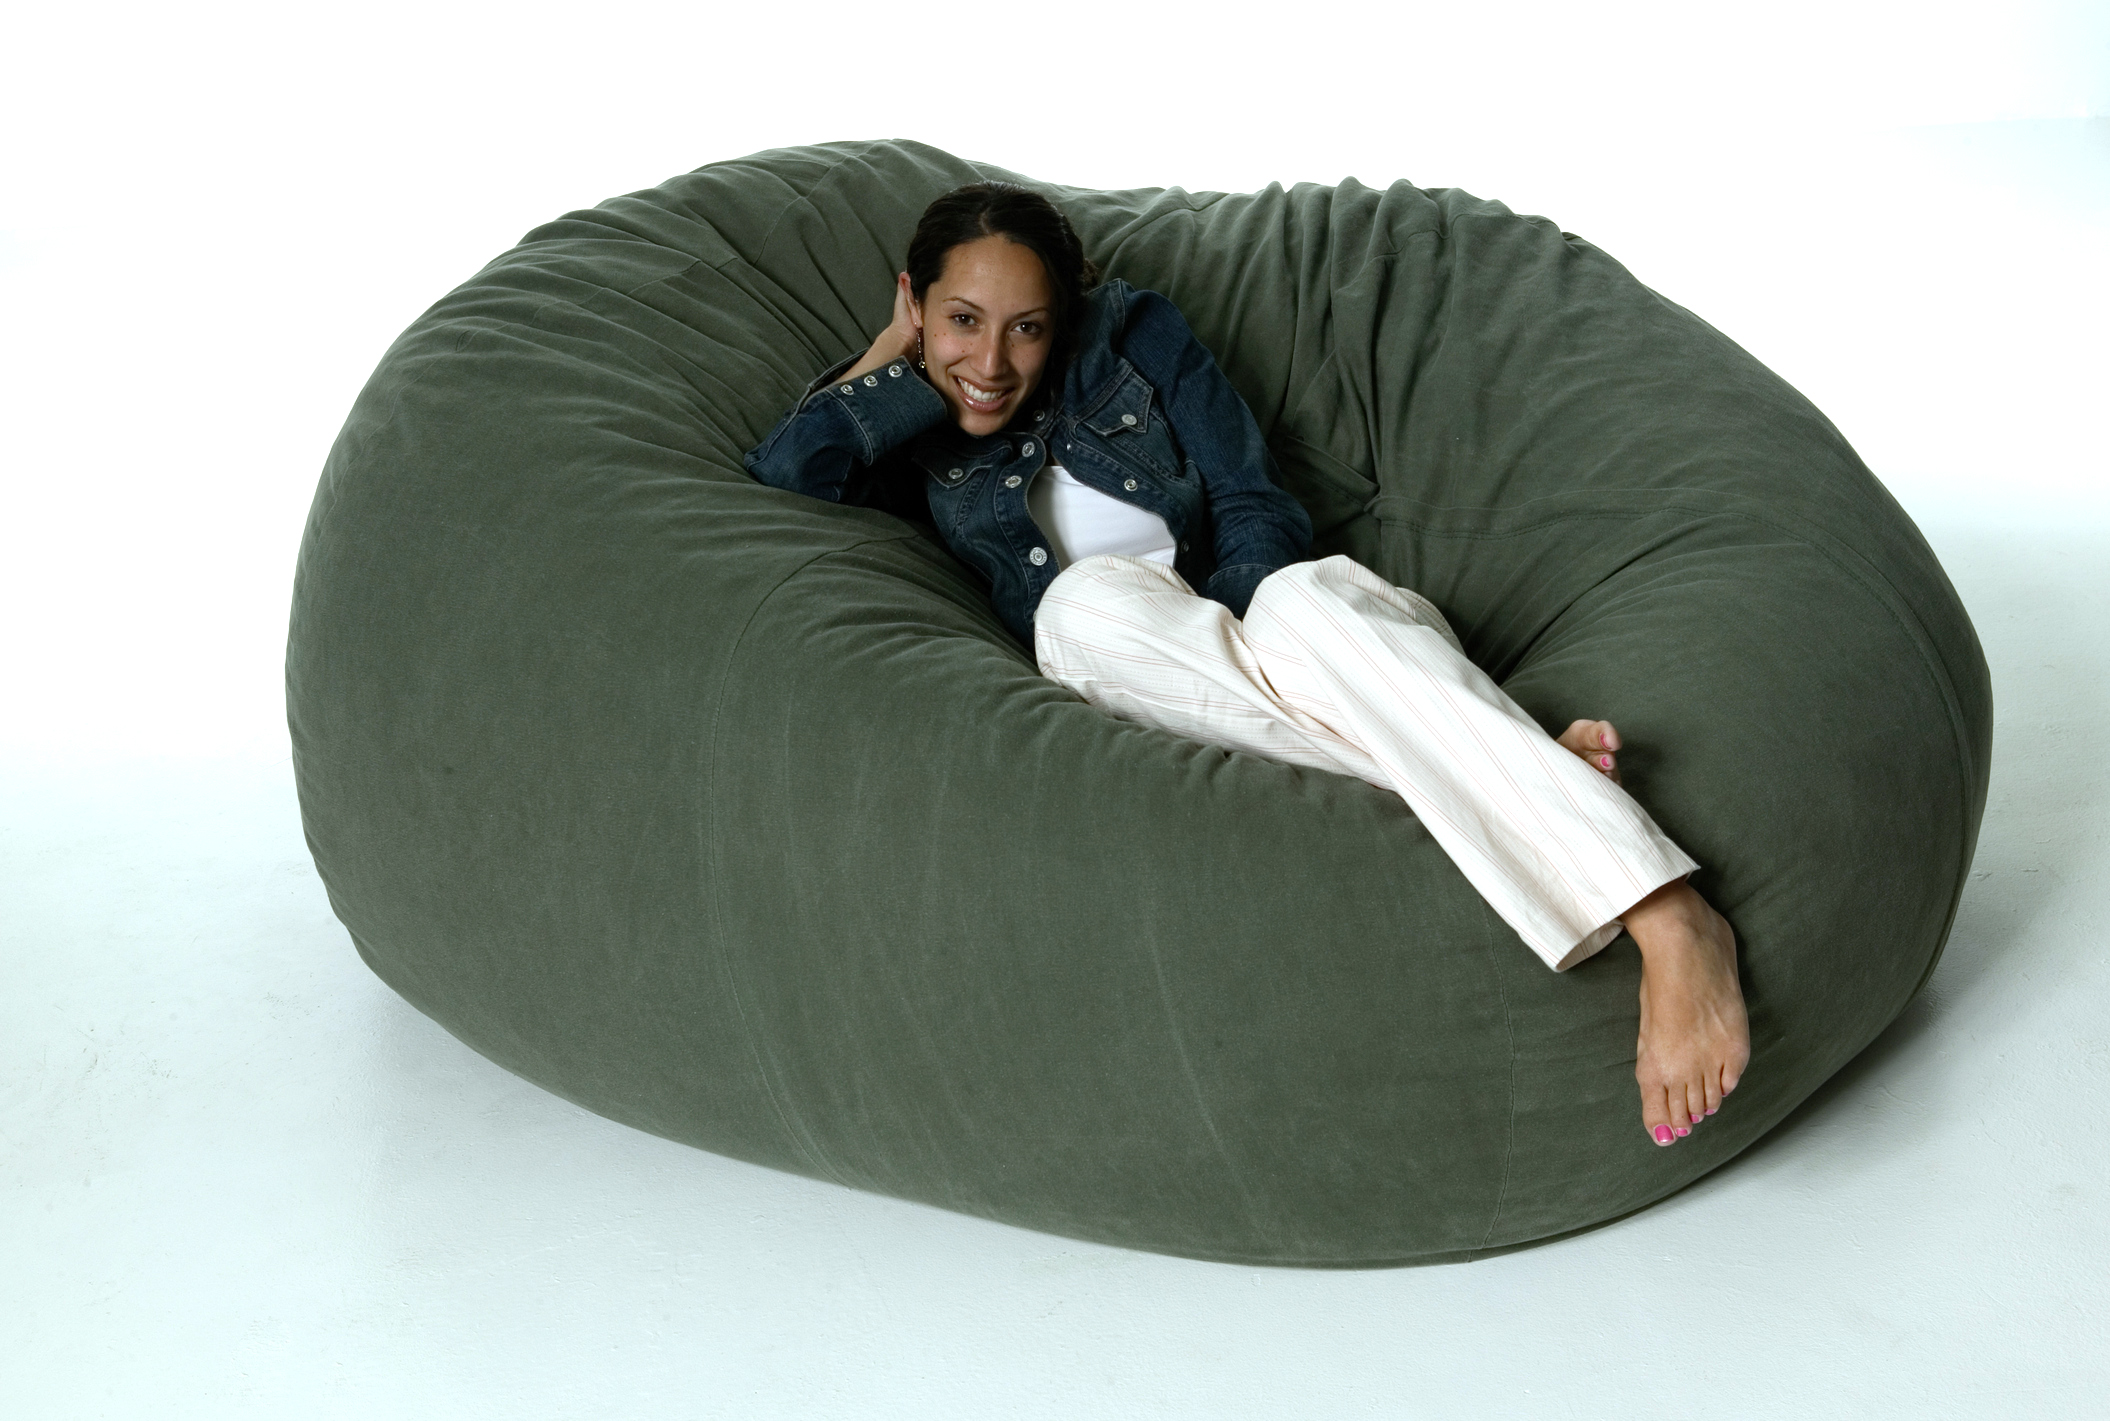 Fine Organic Or Natural Bean Bag Chair Lovetoknow Dailytribune Chair Design For Home Dailytribuneorg